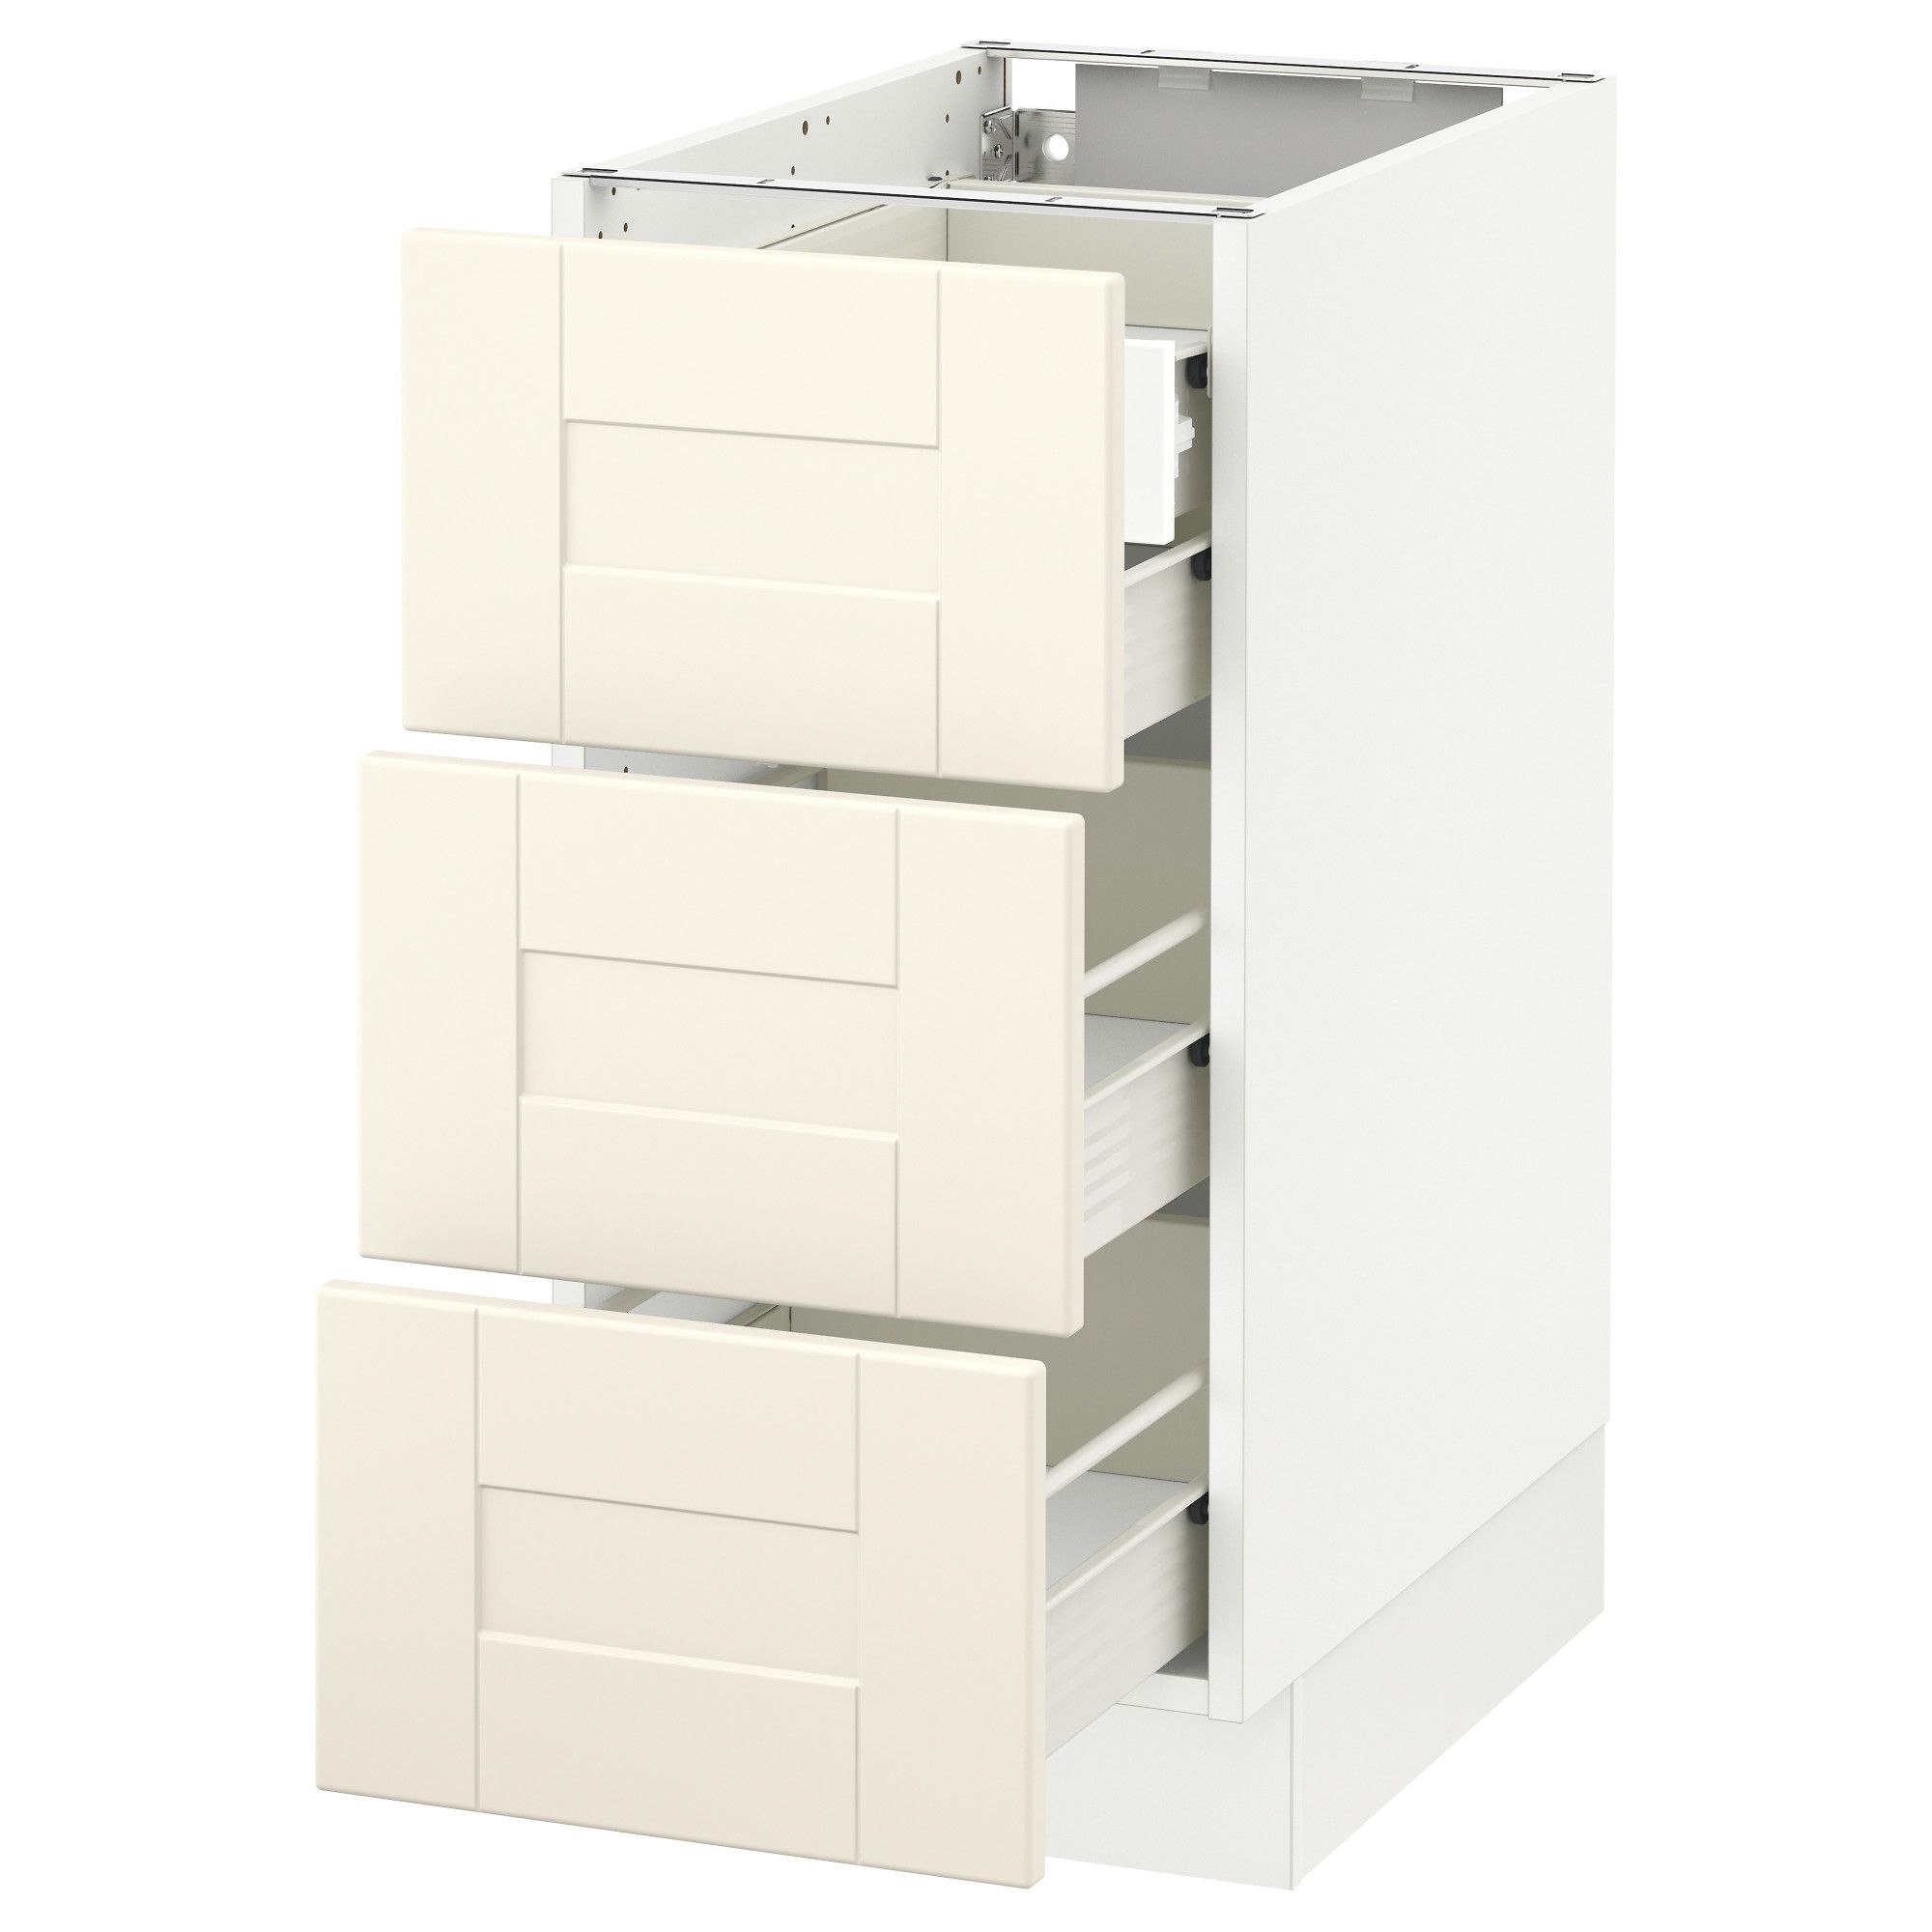 IKEA   SEKTION White Base Cabinet W/3 Fronts U0026 4 Drawers Frame Colour: